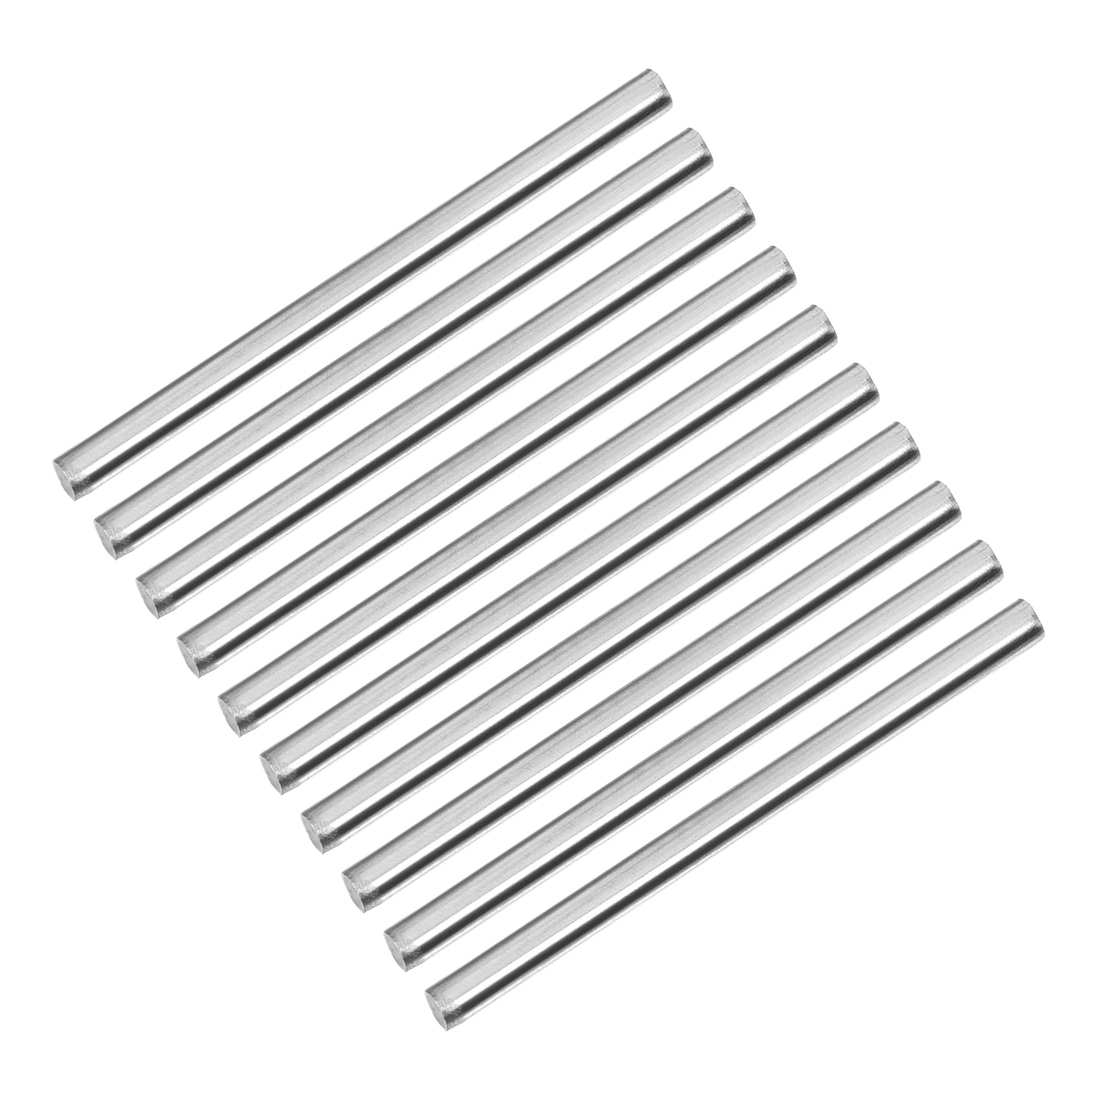 Stainless Steel Shaft Round Rod 30mmx2mm for DIY RC Car Model Part 20Pcs